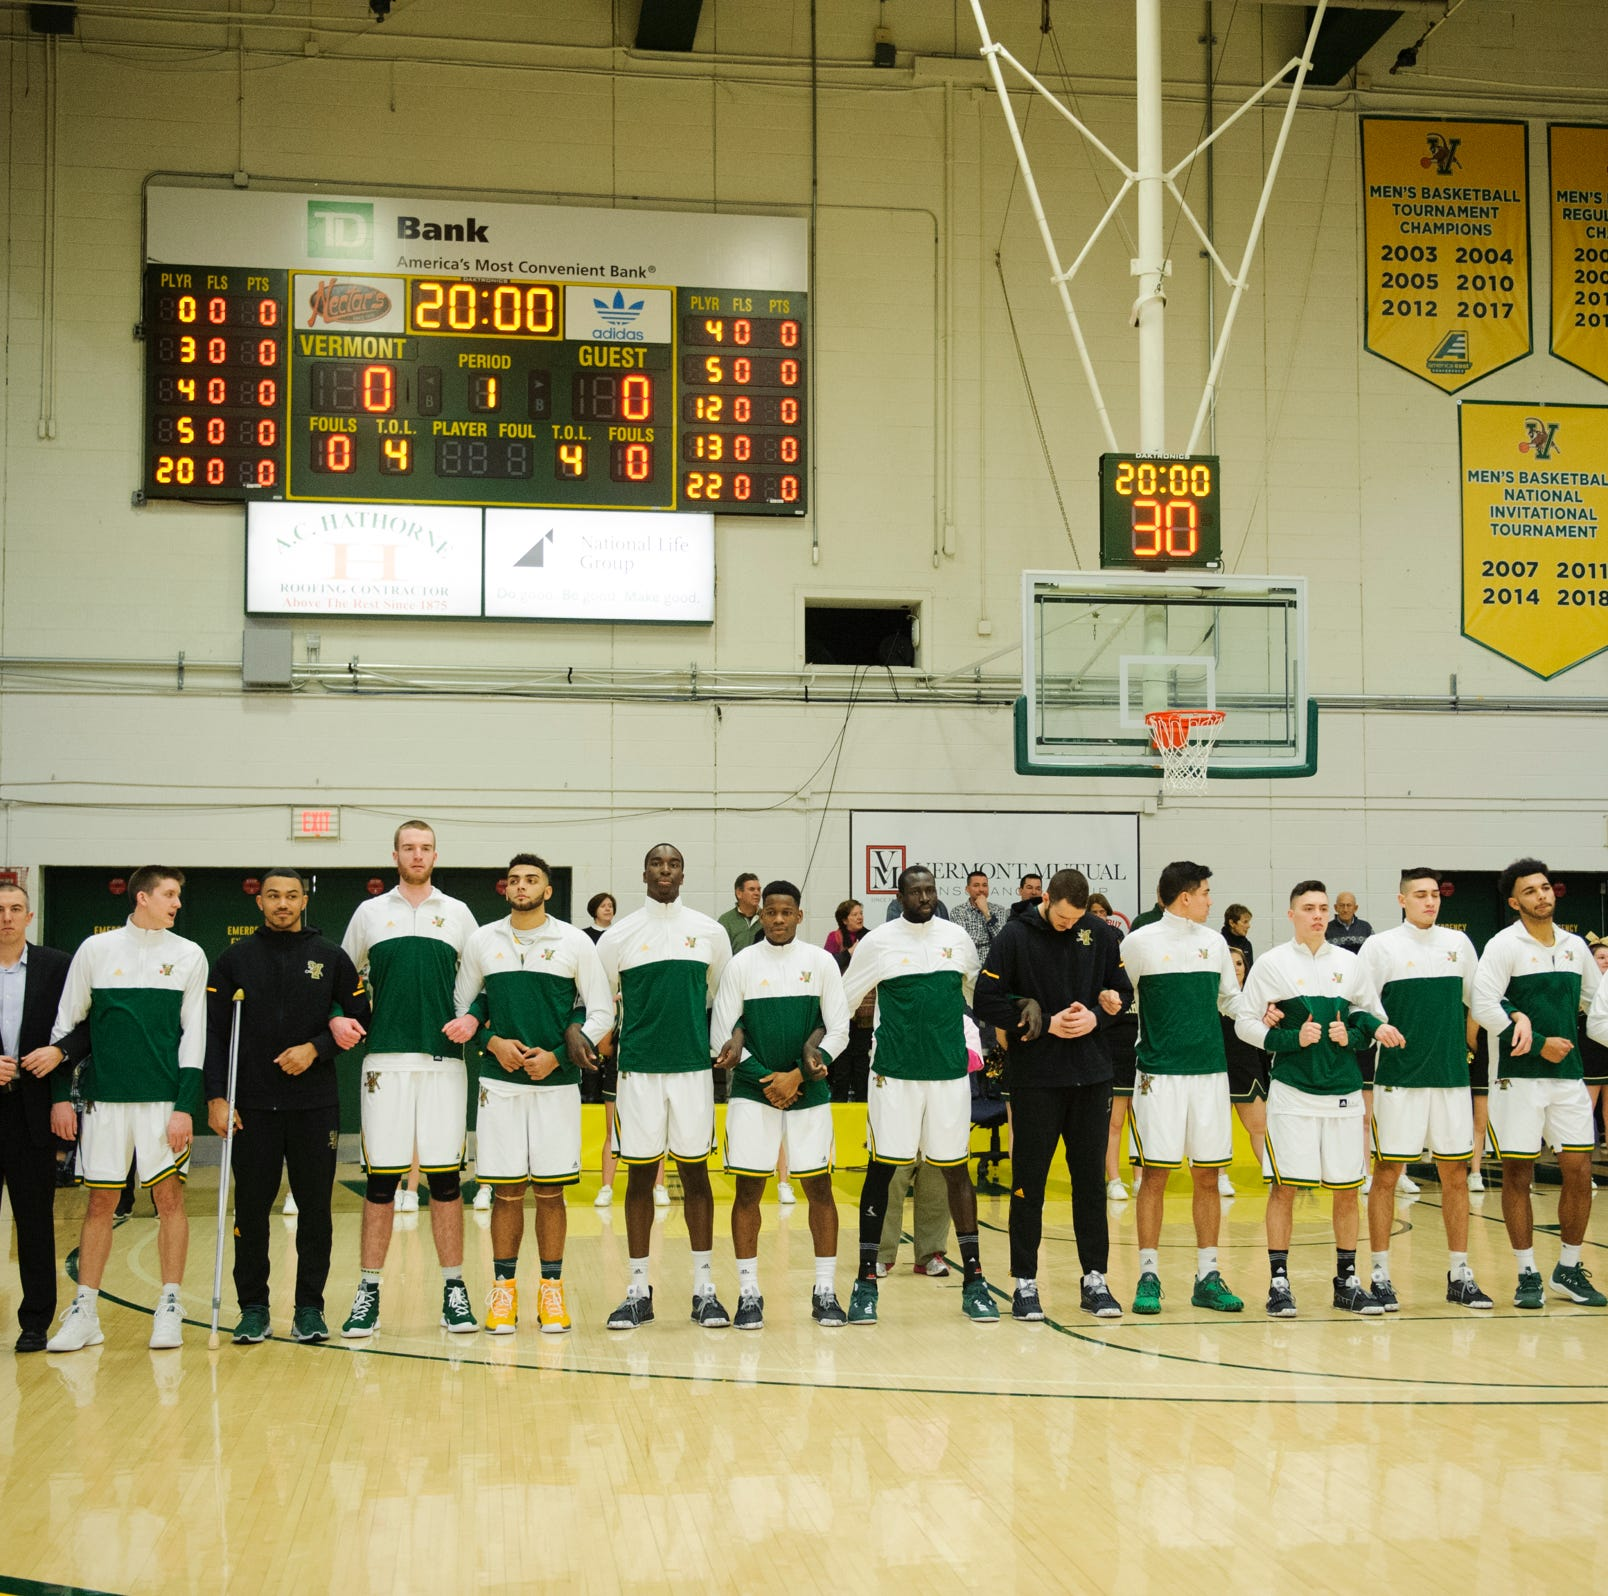 UVM basketball: Saturday's game times changed due to snow storm Harper